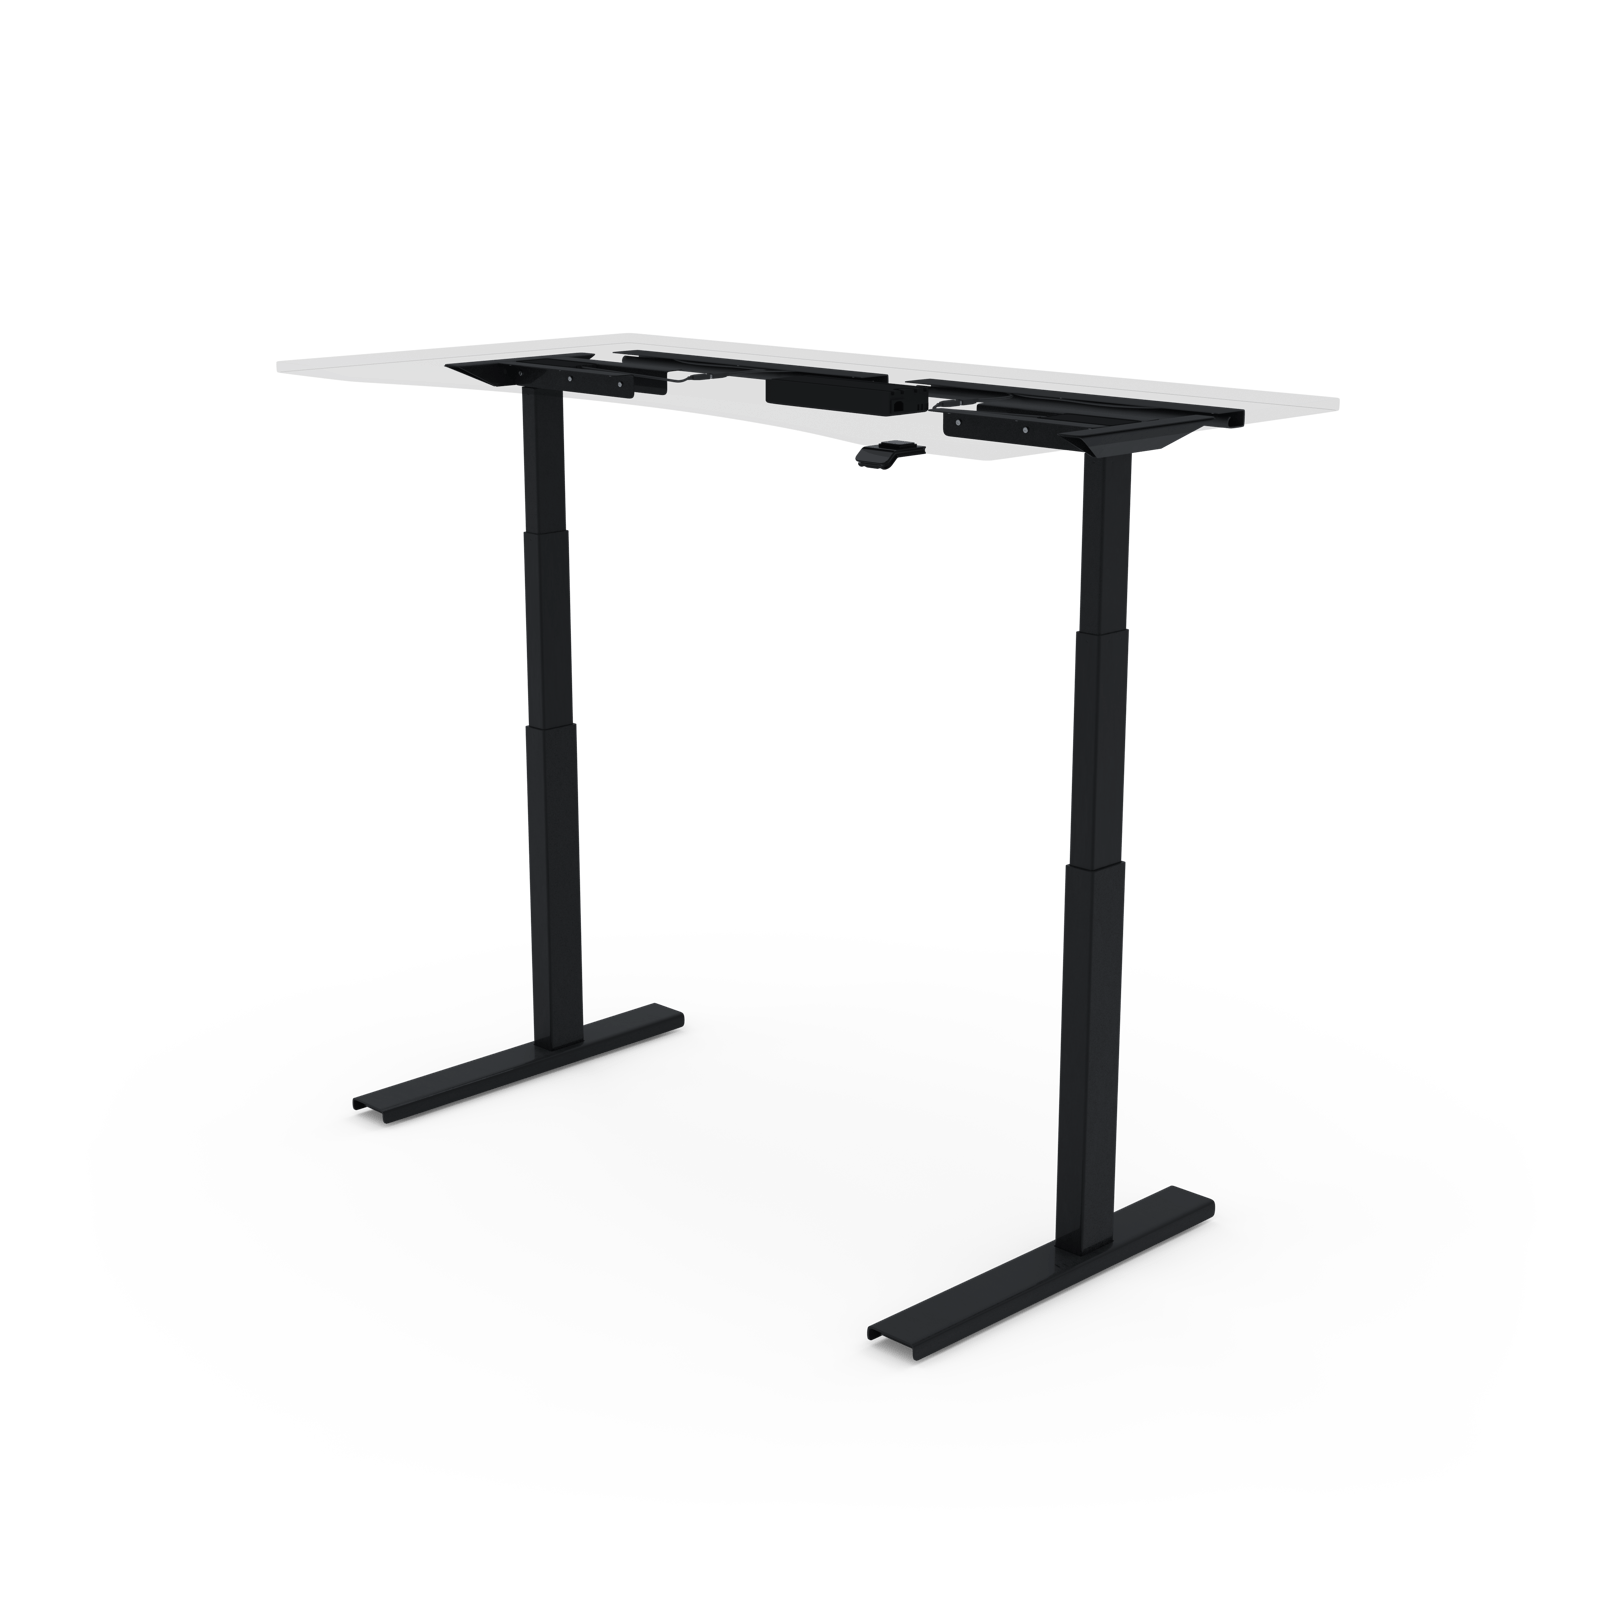 UPDESK Pro Frame Only 2-Leg DIY Electric Adjustable Standing Desk Frame